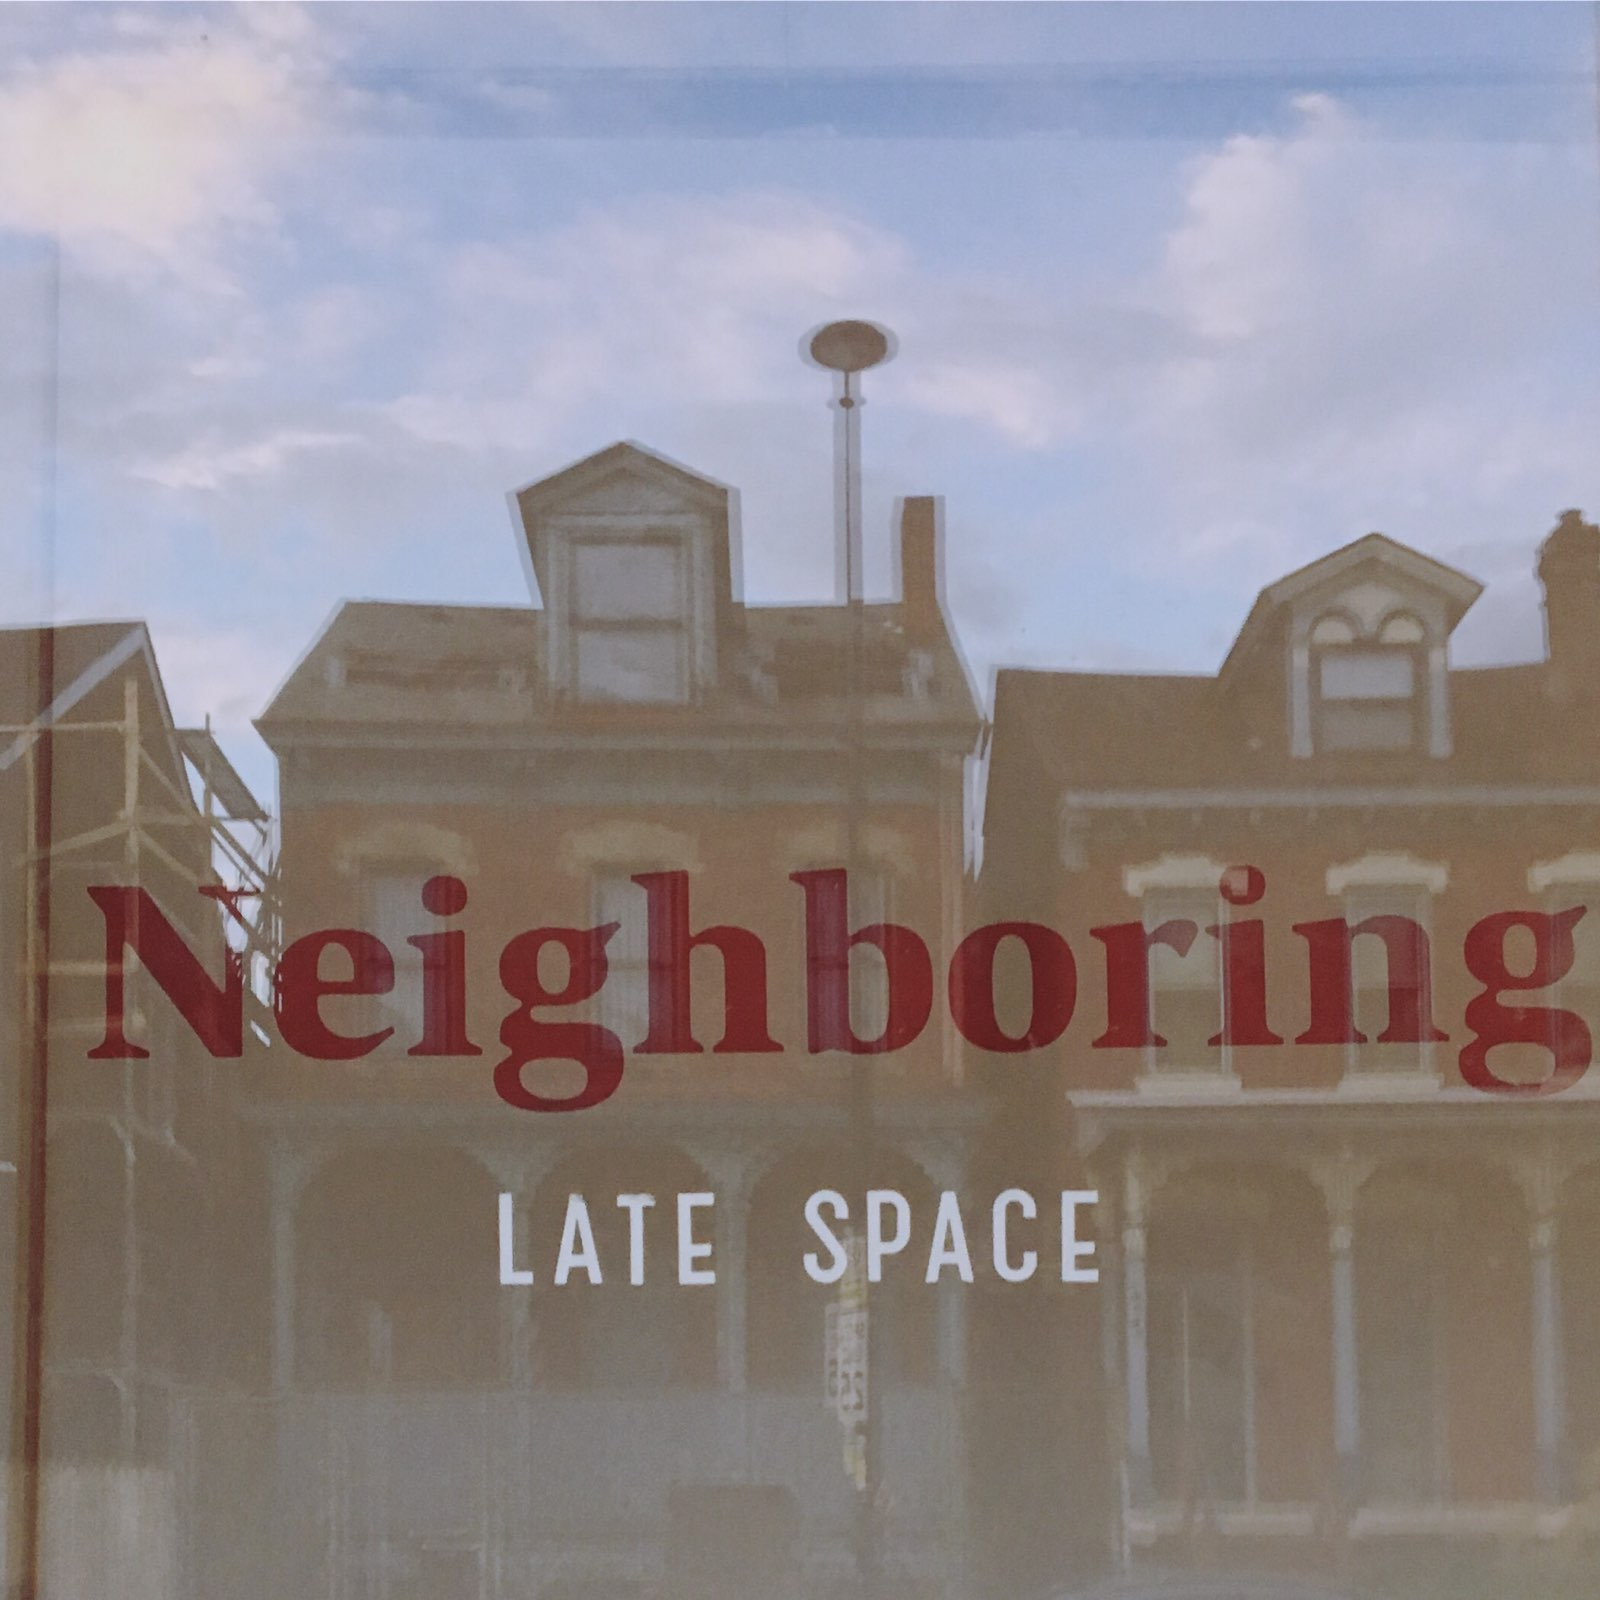 photograph of Neighboring sign through windows reflecting houses